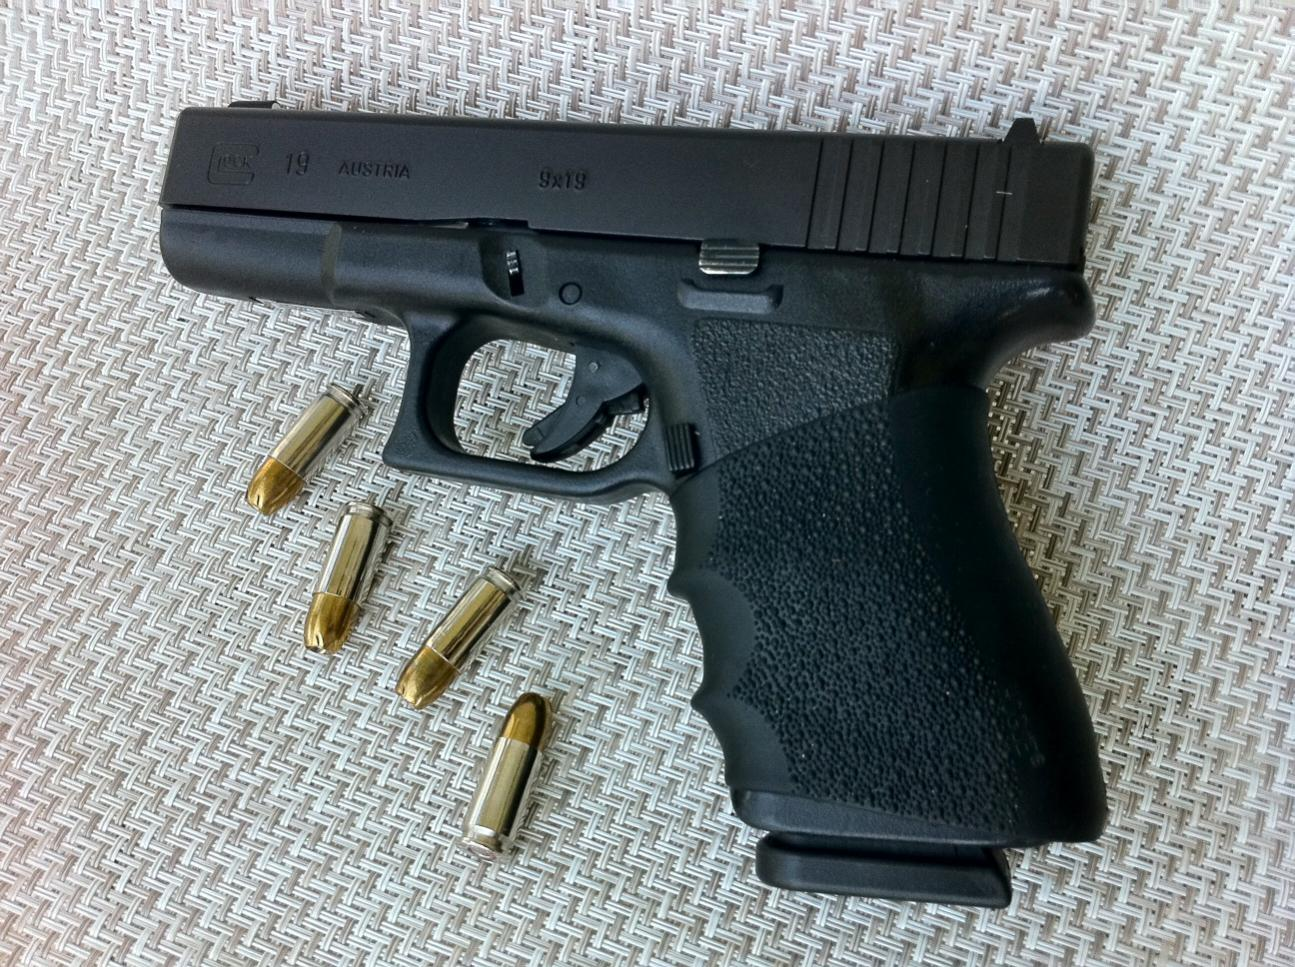 Stock Glock or Rocked Glock Lets see some pics-photo.jpg